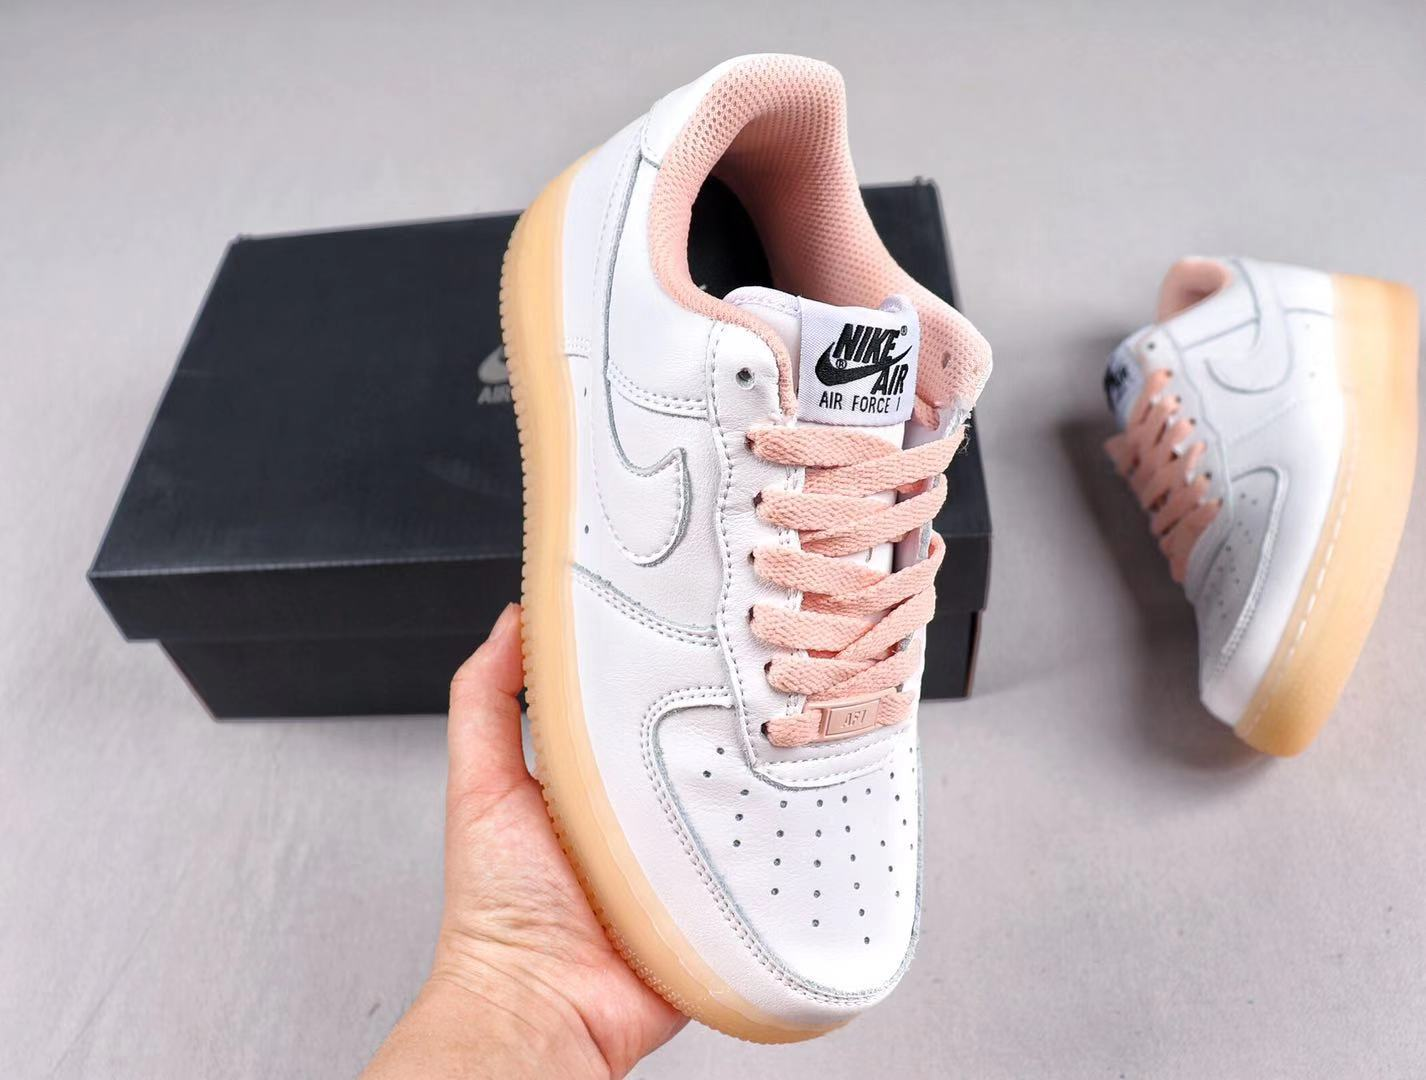 Nike Wmns Air Force 1 Low AH0287-110 White/Sakura Pink Fashion Sneakers